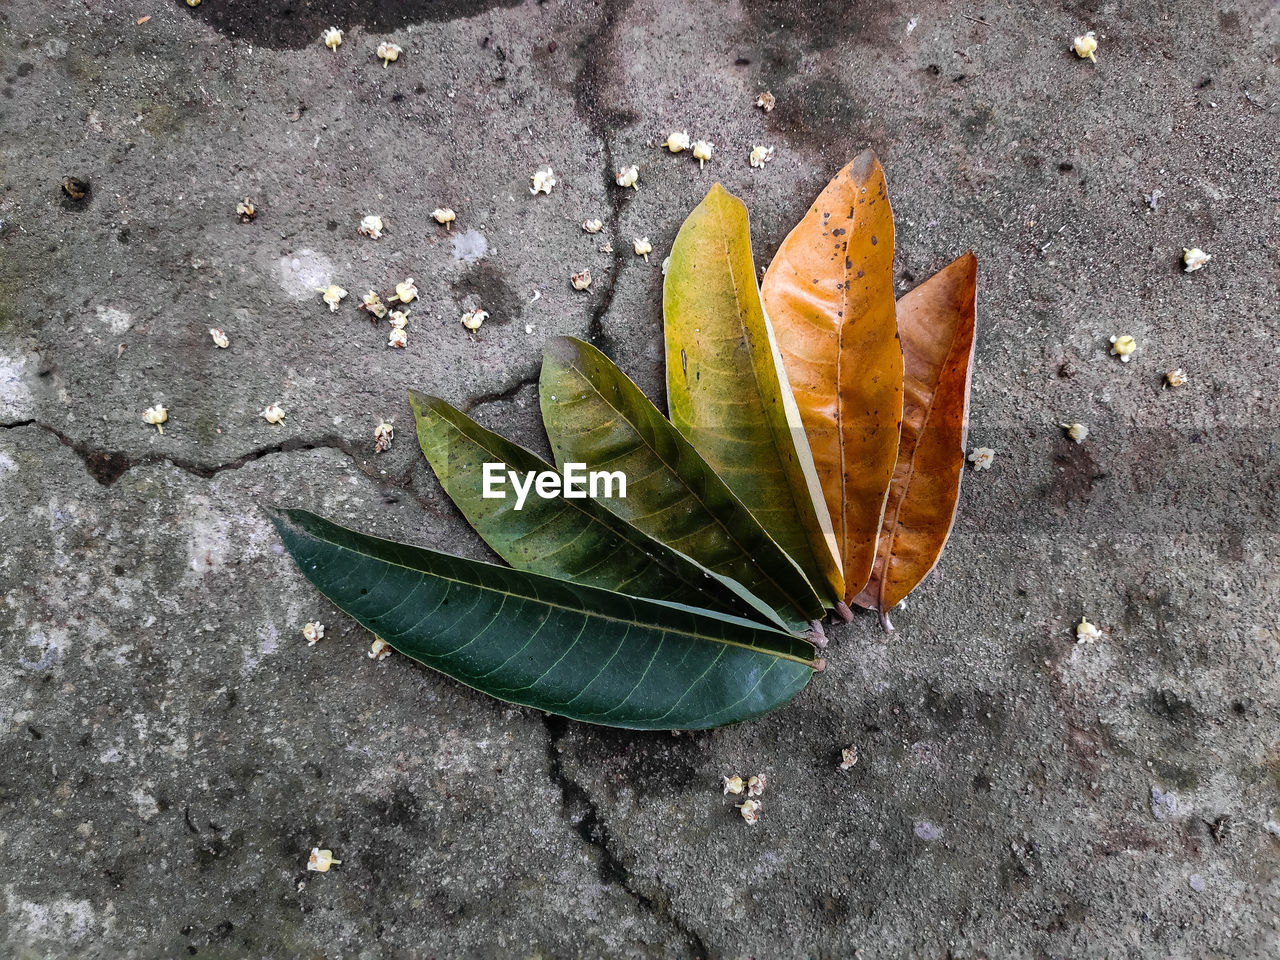 HIGH ANGLE VIEW OF LEAF ON STREET